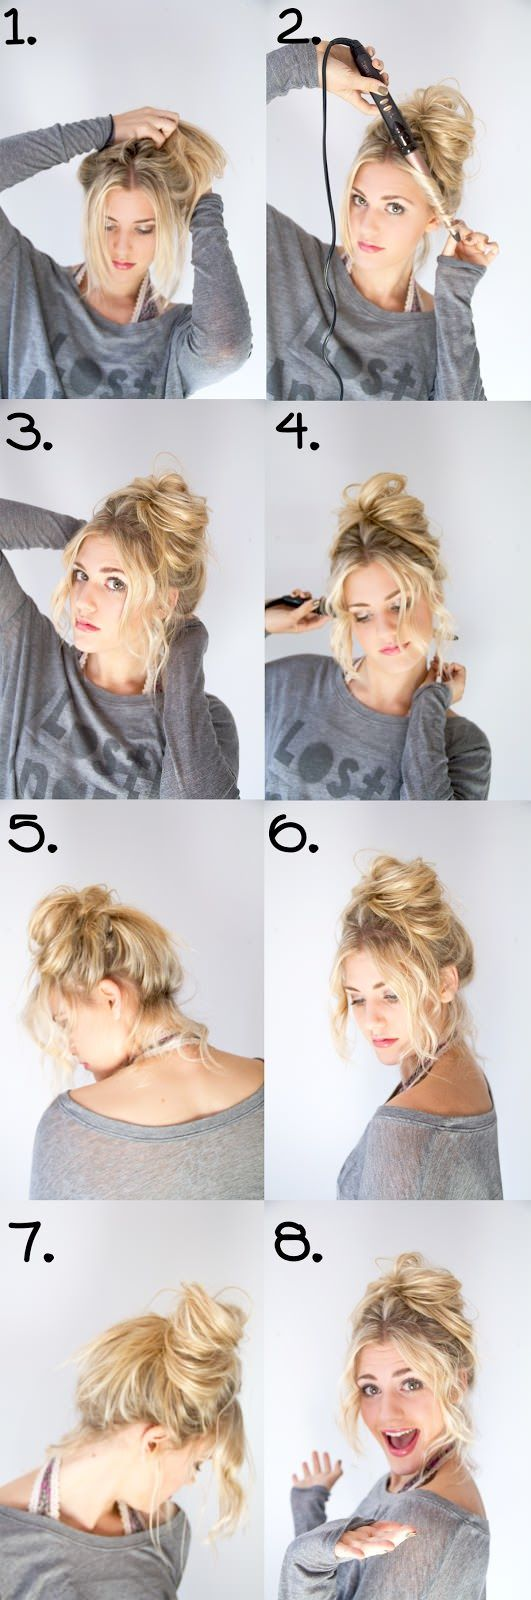 dirty hair perfection | everyday hairstyles half up | pinterest